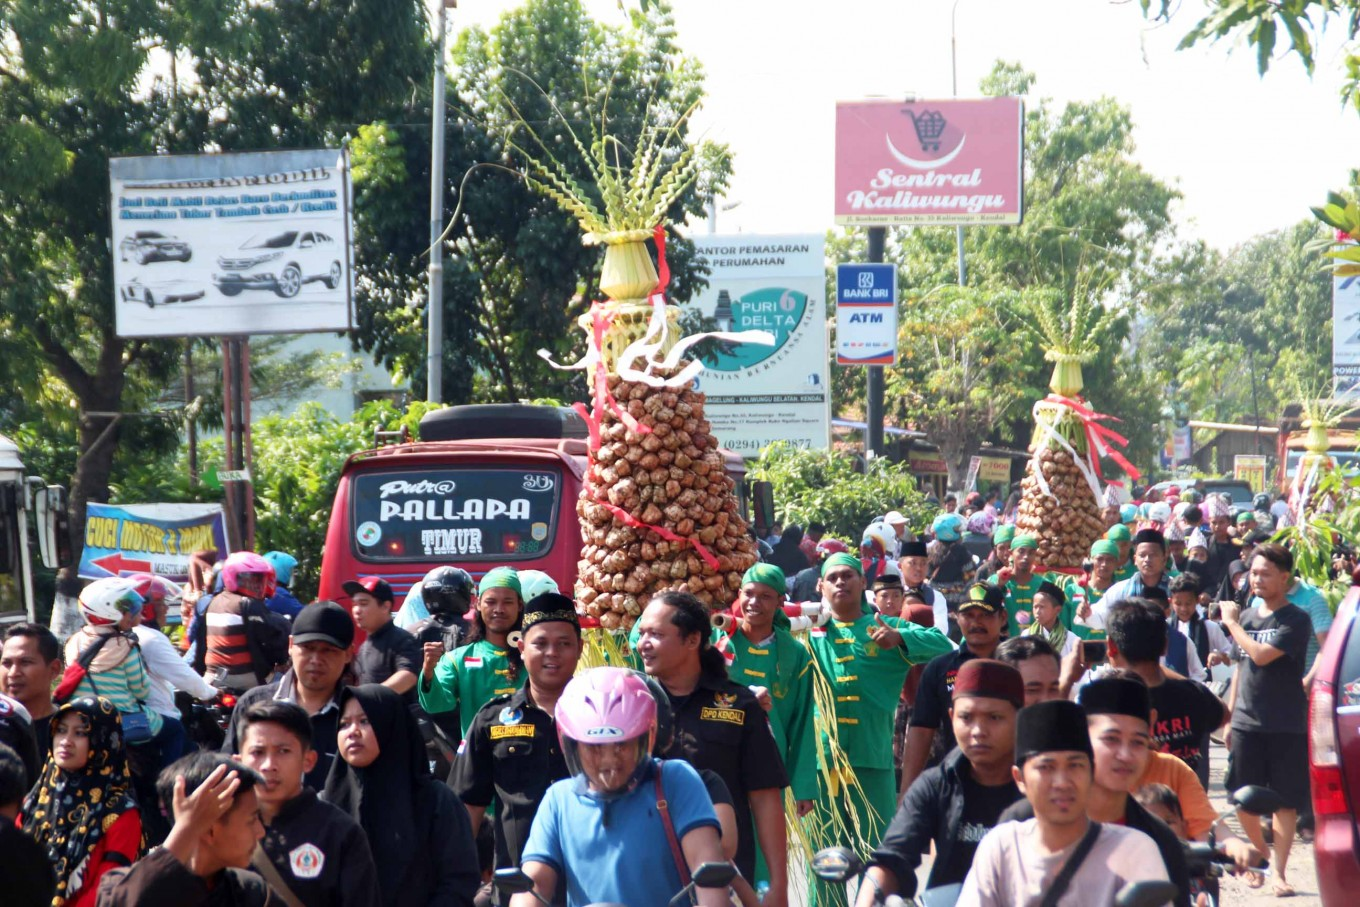 Merry festivity: Hundreds of Kendal residents in Central Java participate in a parade that features three gunungan rice cone offerings to celebrate Syawalan in Kaliwungu. JP/ Suherdjoko